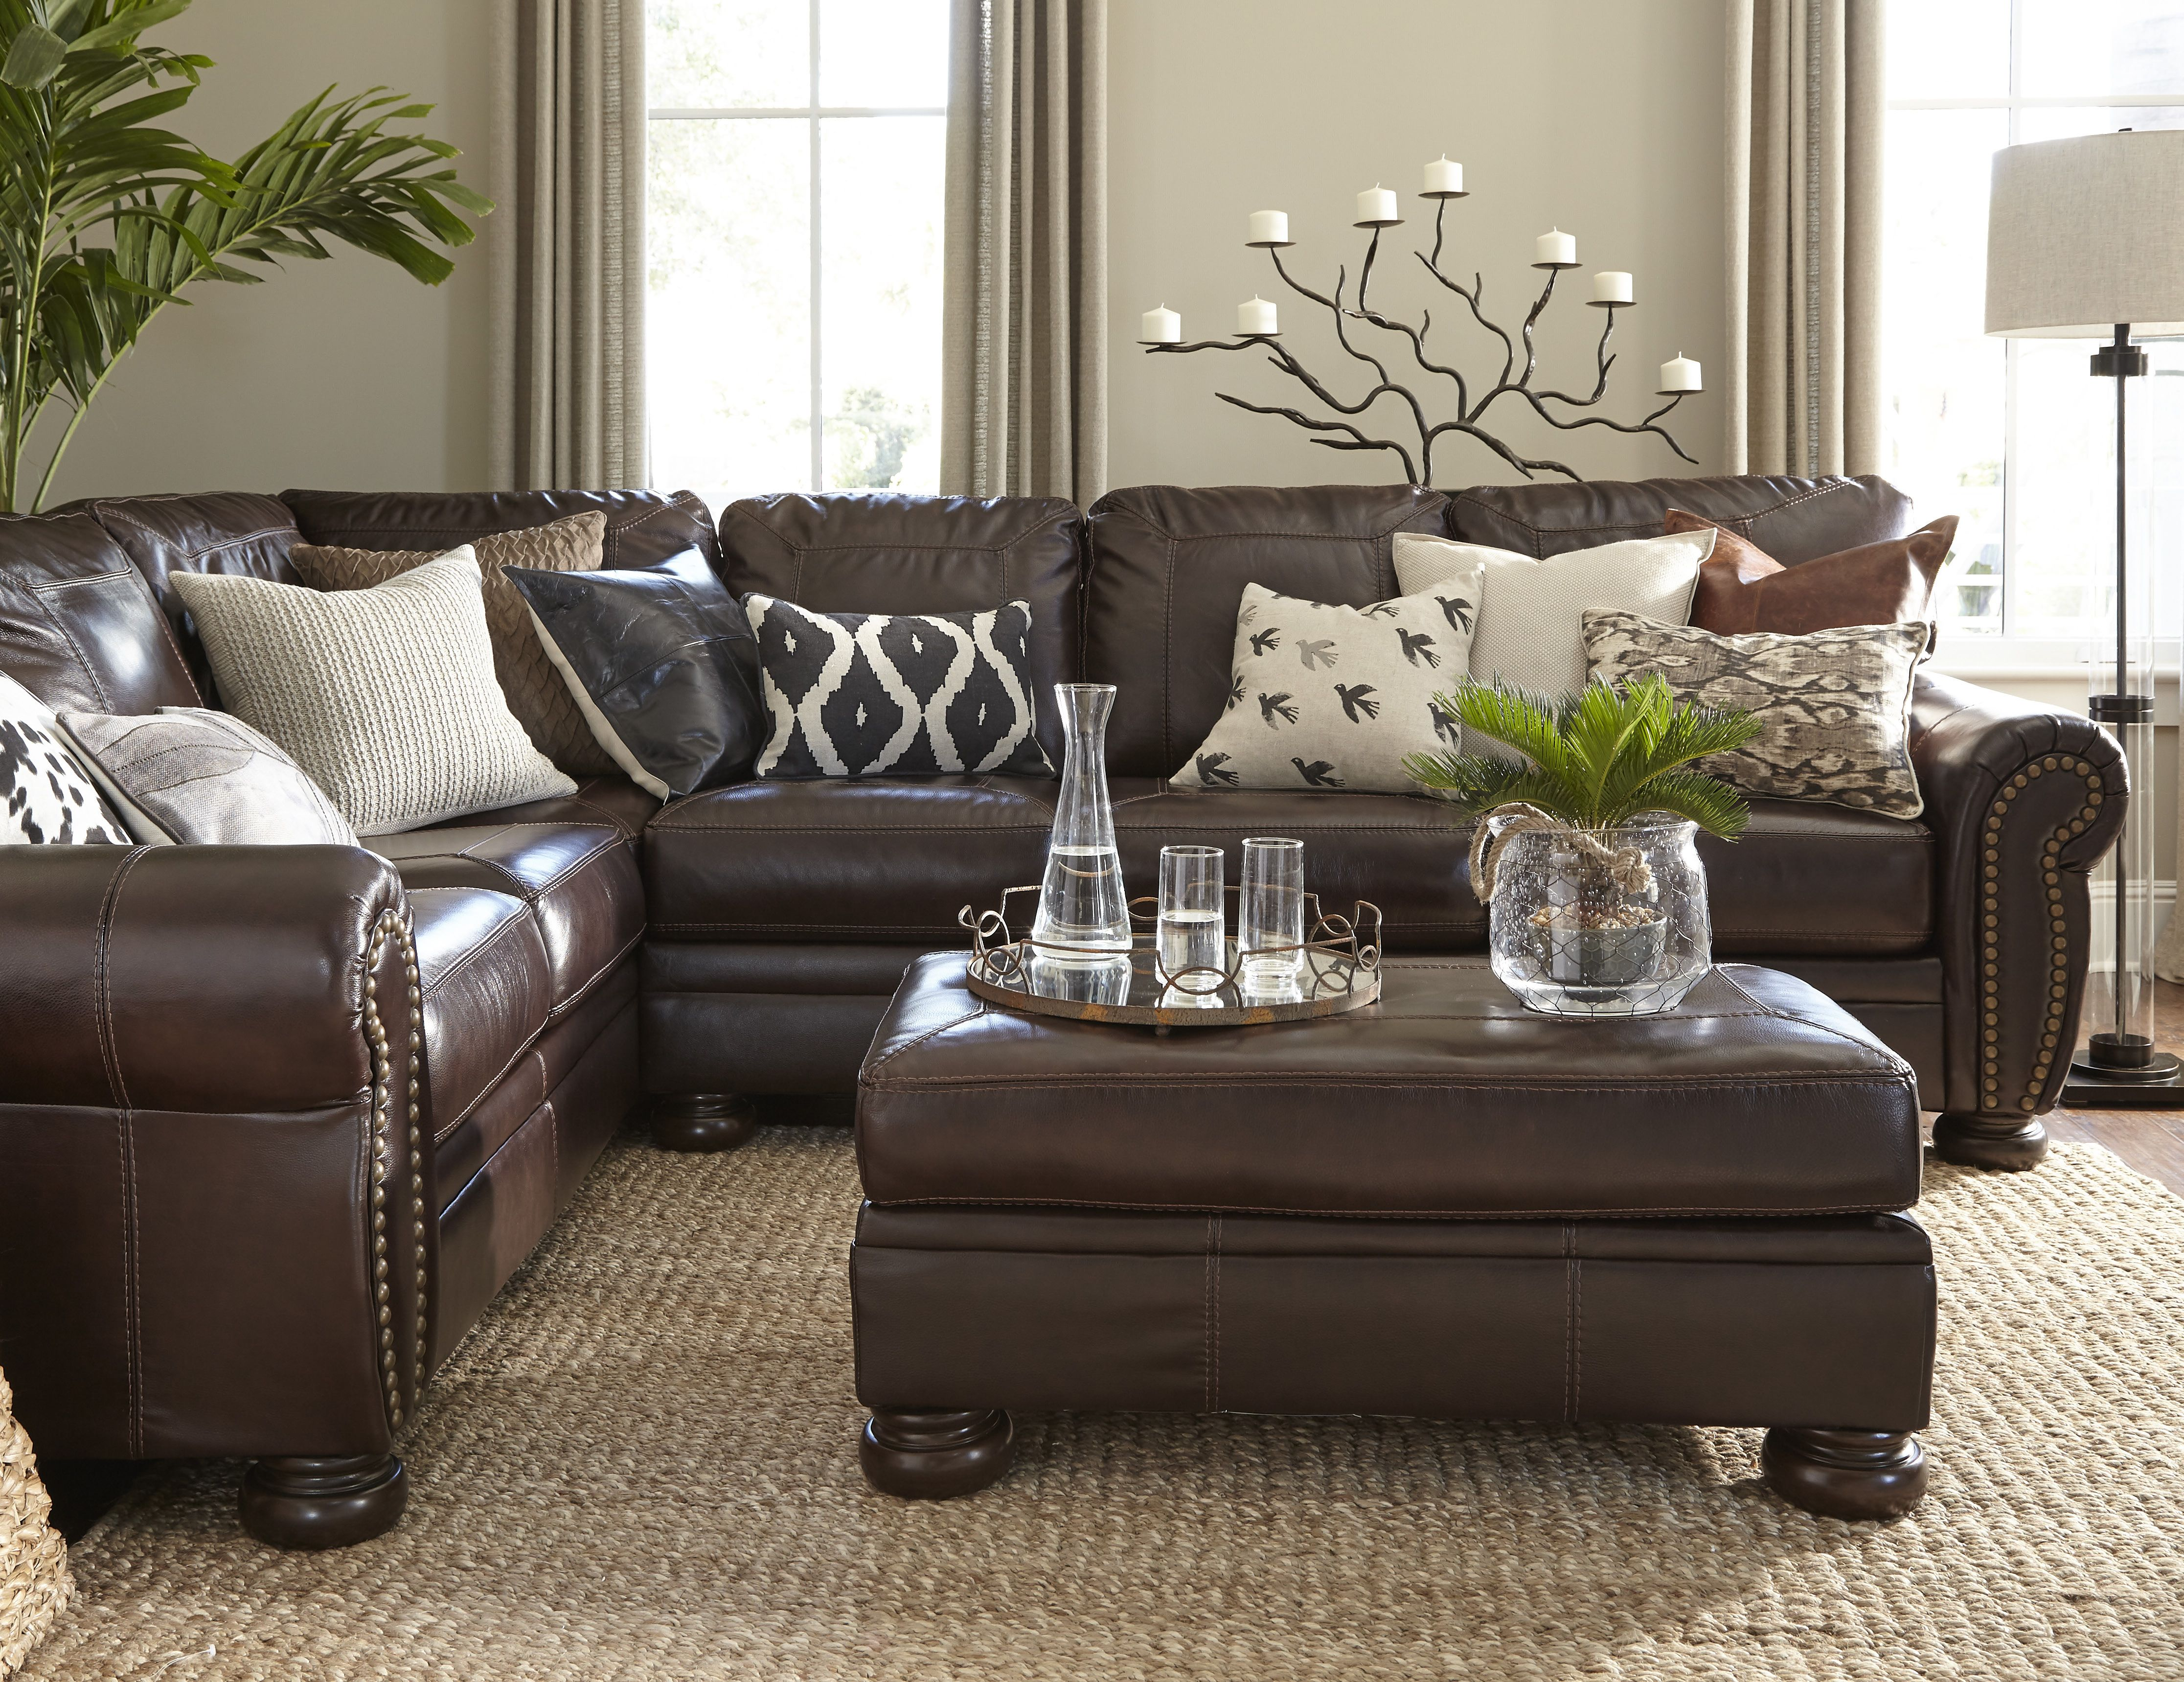 Permalink to Creative Ideas Regarding Design Ideas Living Room Brown Leather Couch Image